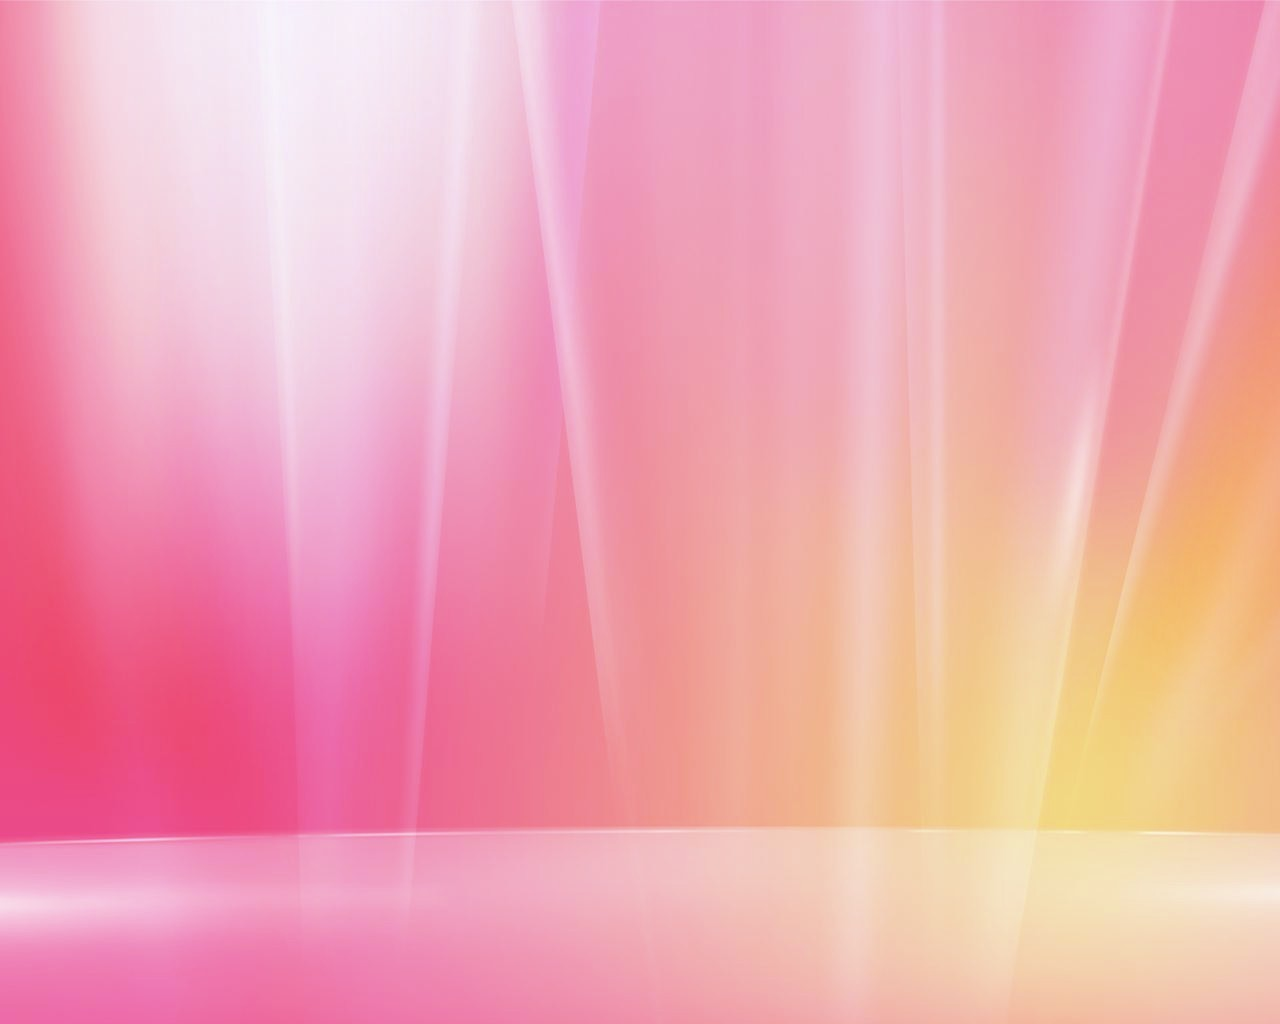 Pink Wallpaper Colors Wallpaper 34511769 Fanpop Page 8